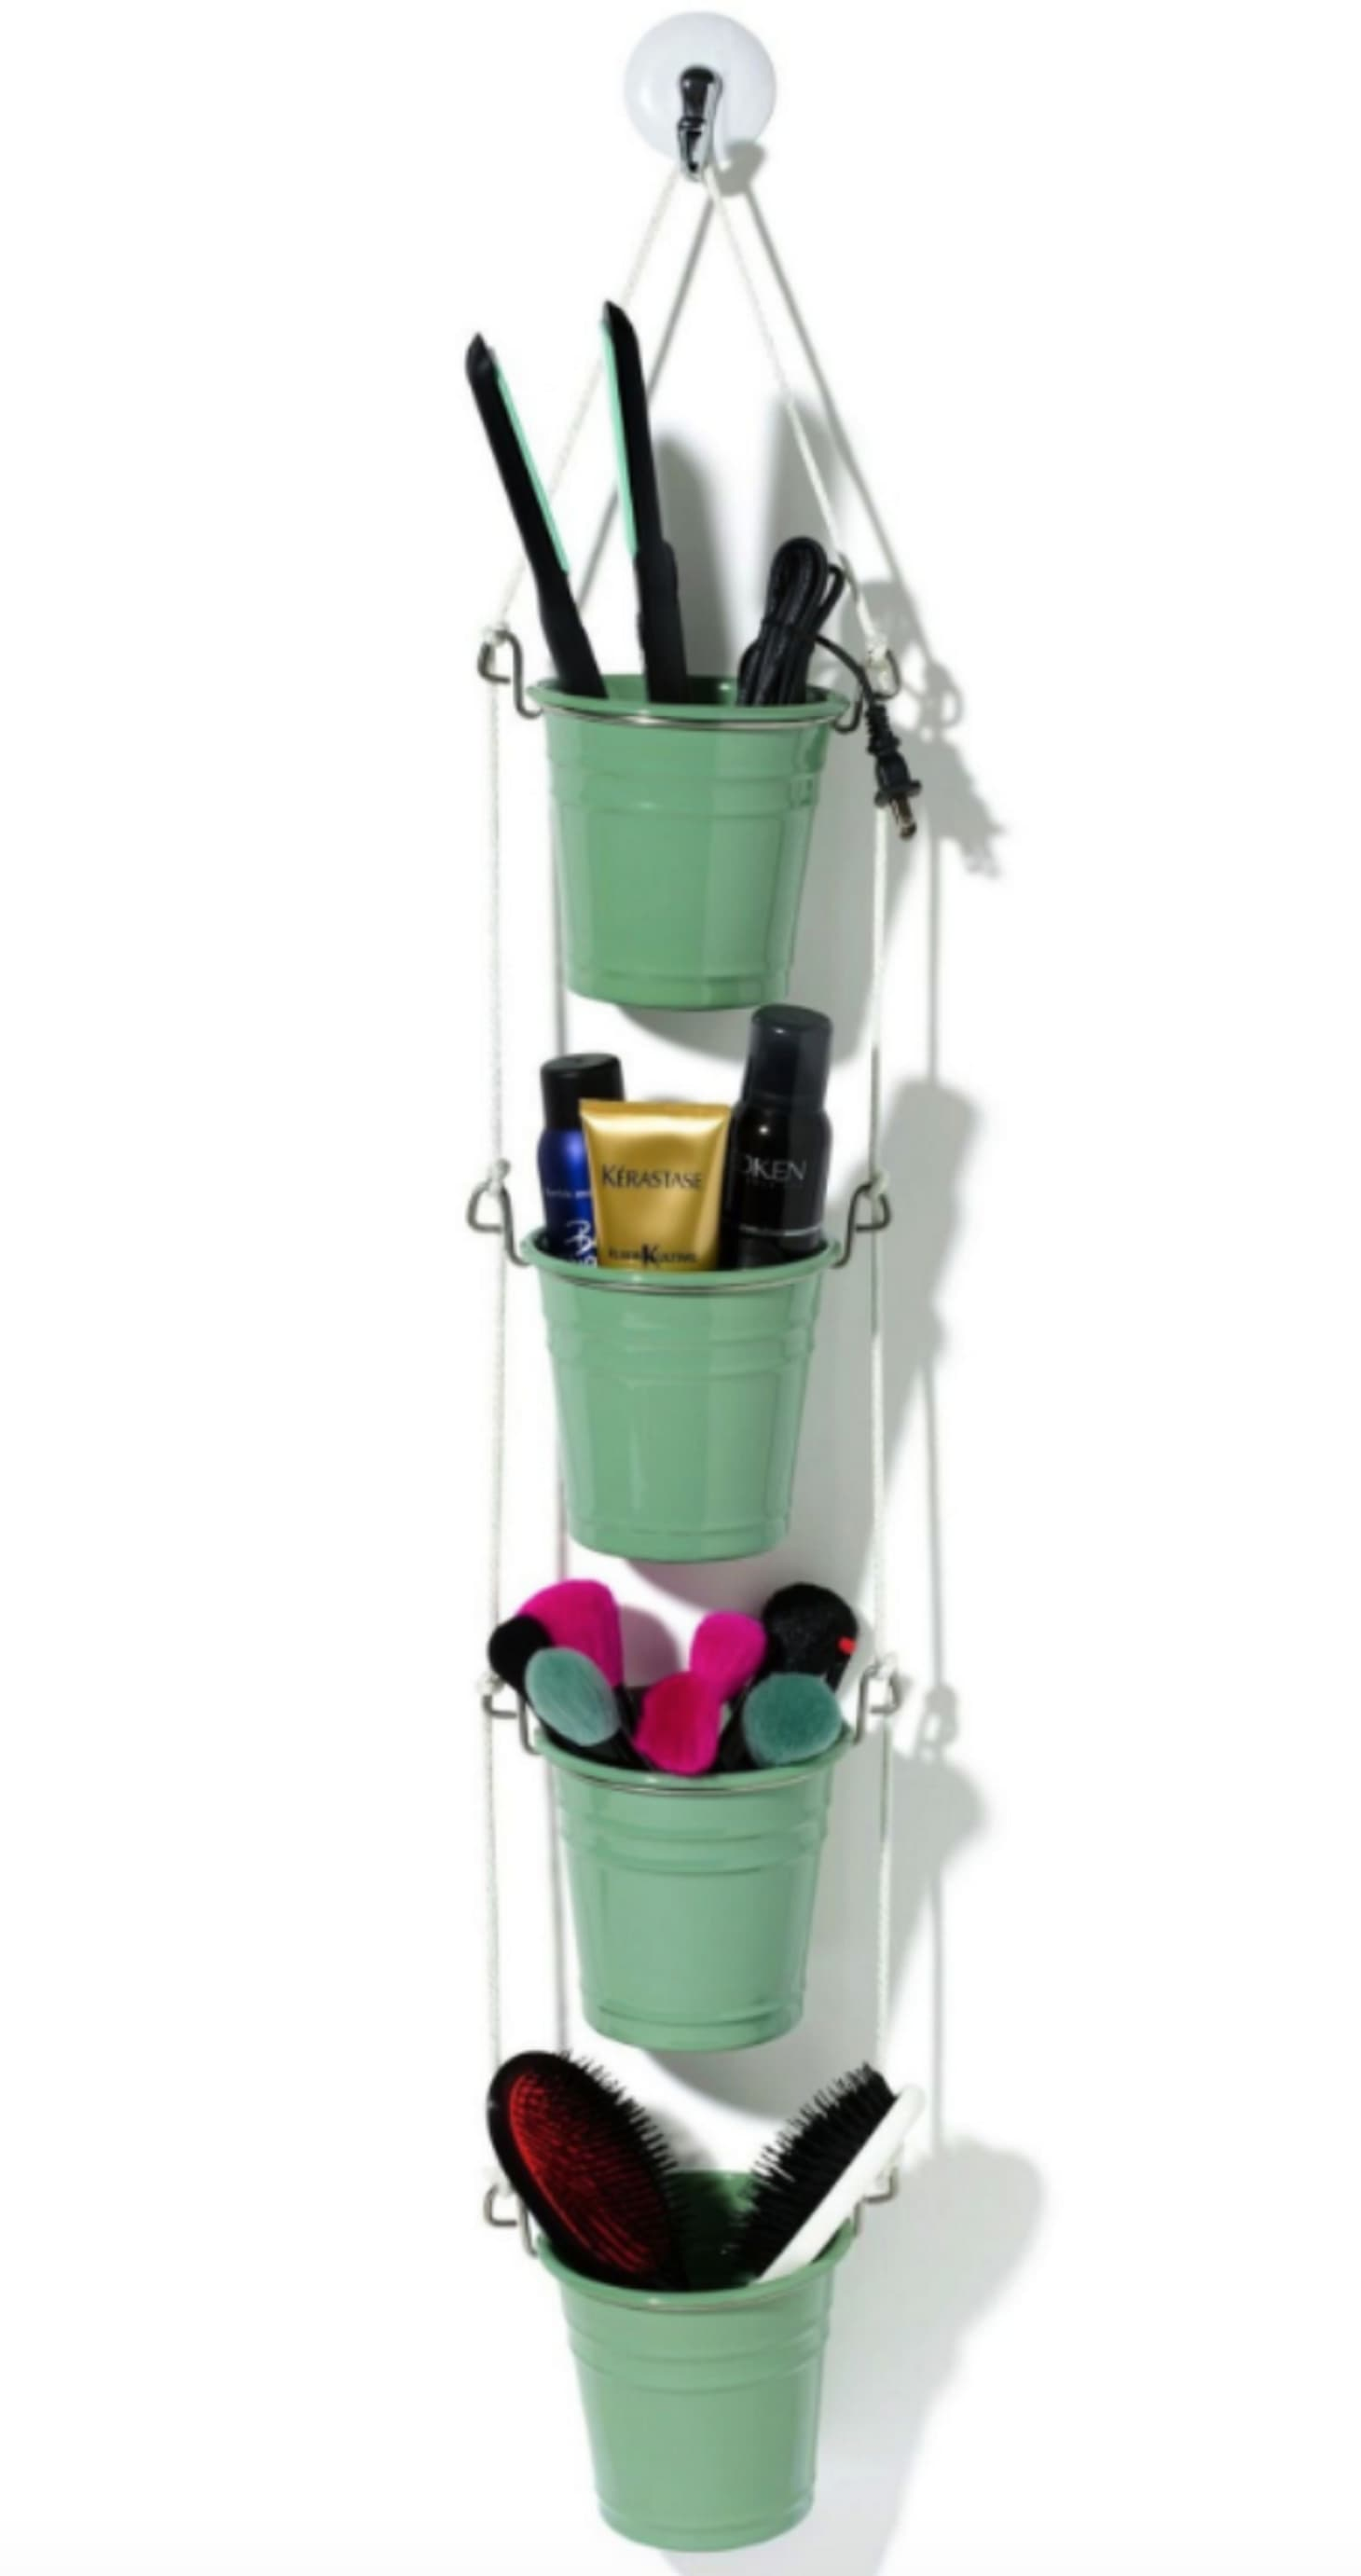 6 Easy DIY Ways to Organize Hair Styling Tools in the